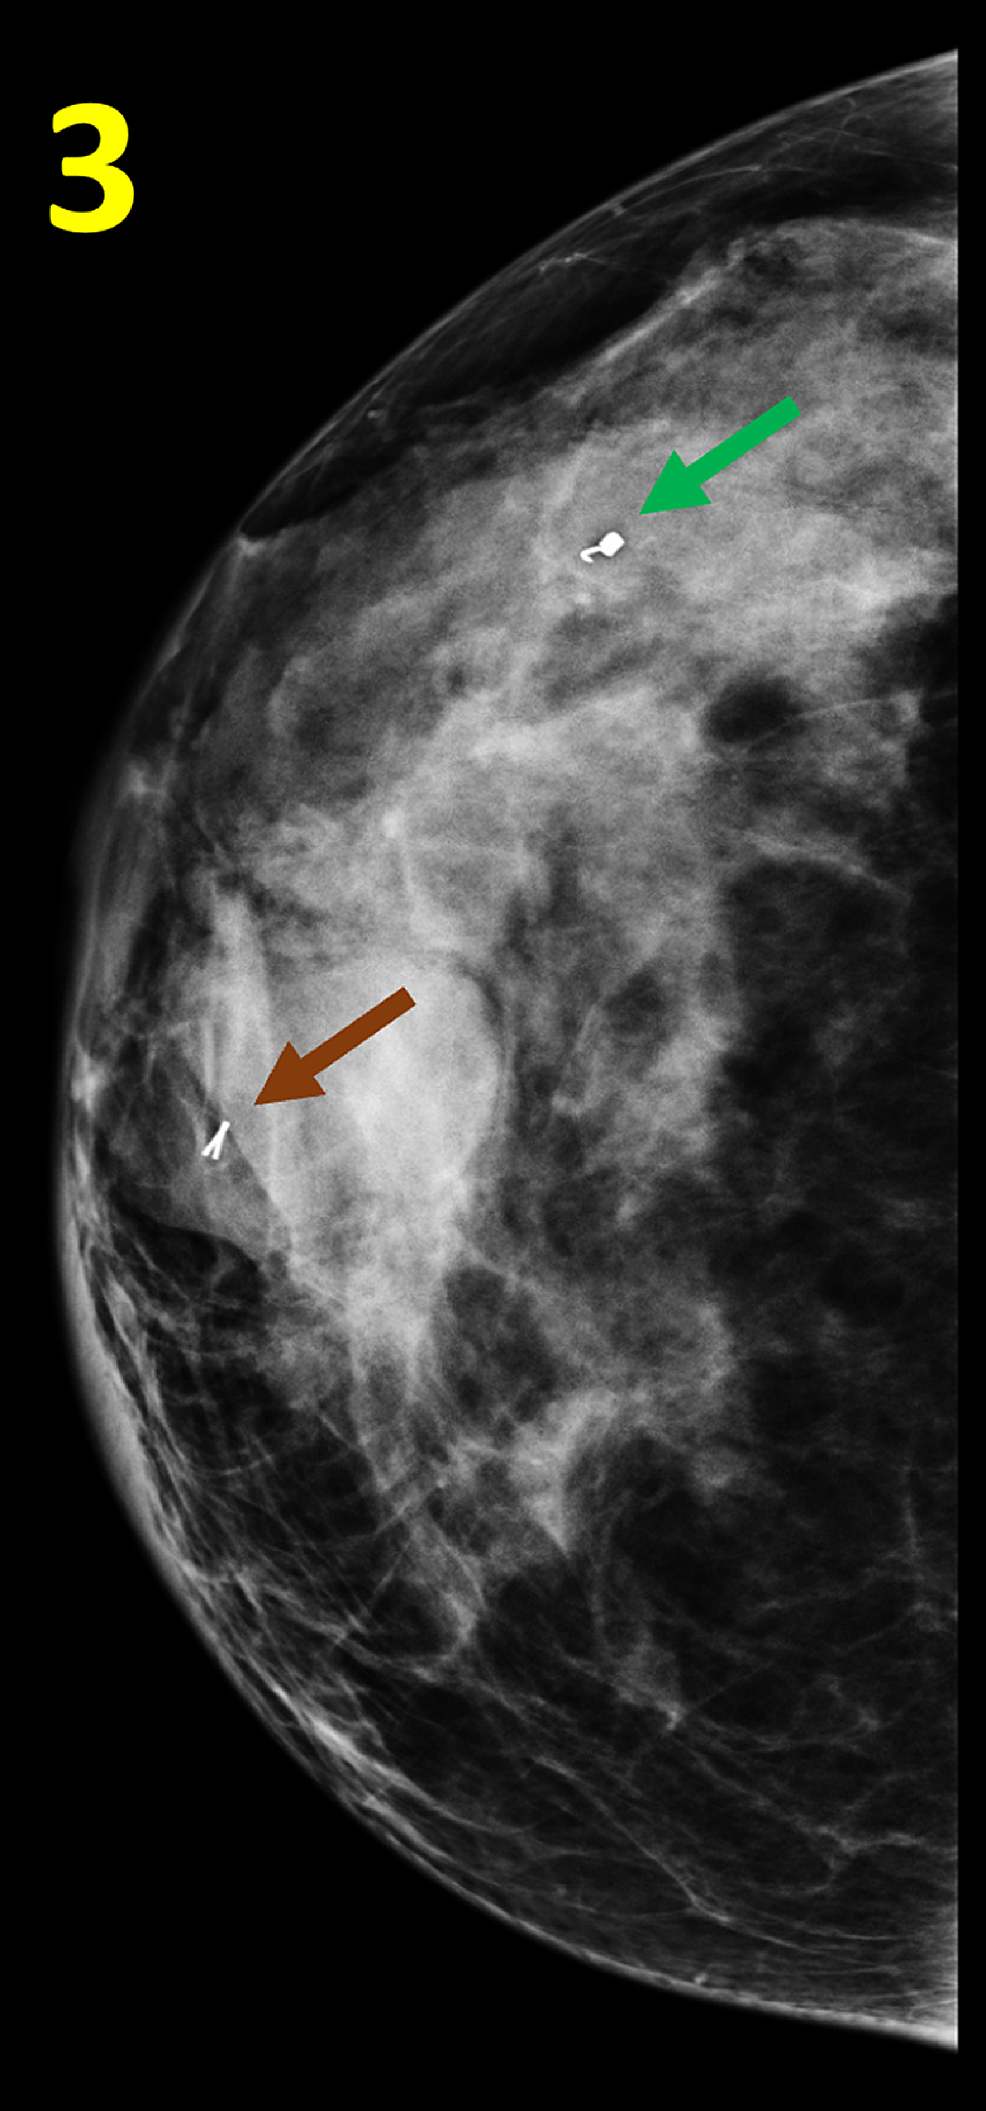 Post-biopsy-Mammogram-of-the-Right-Breast-in-Cranial-caudal-View